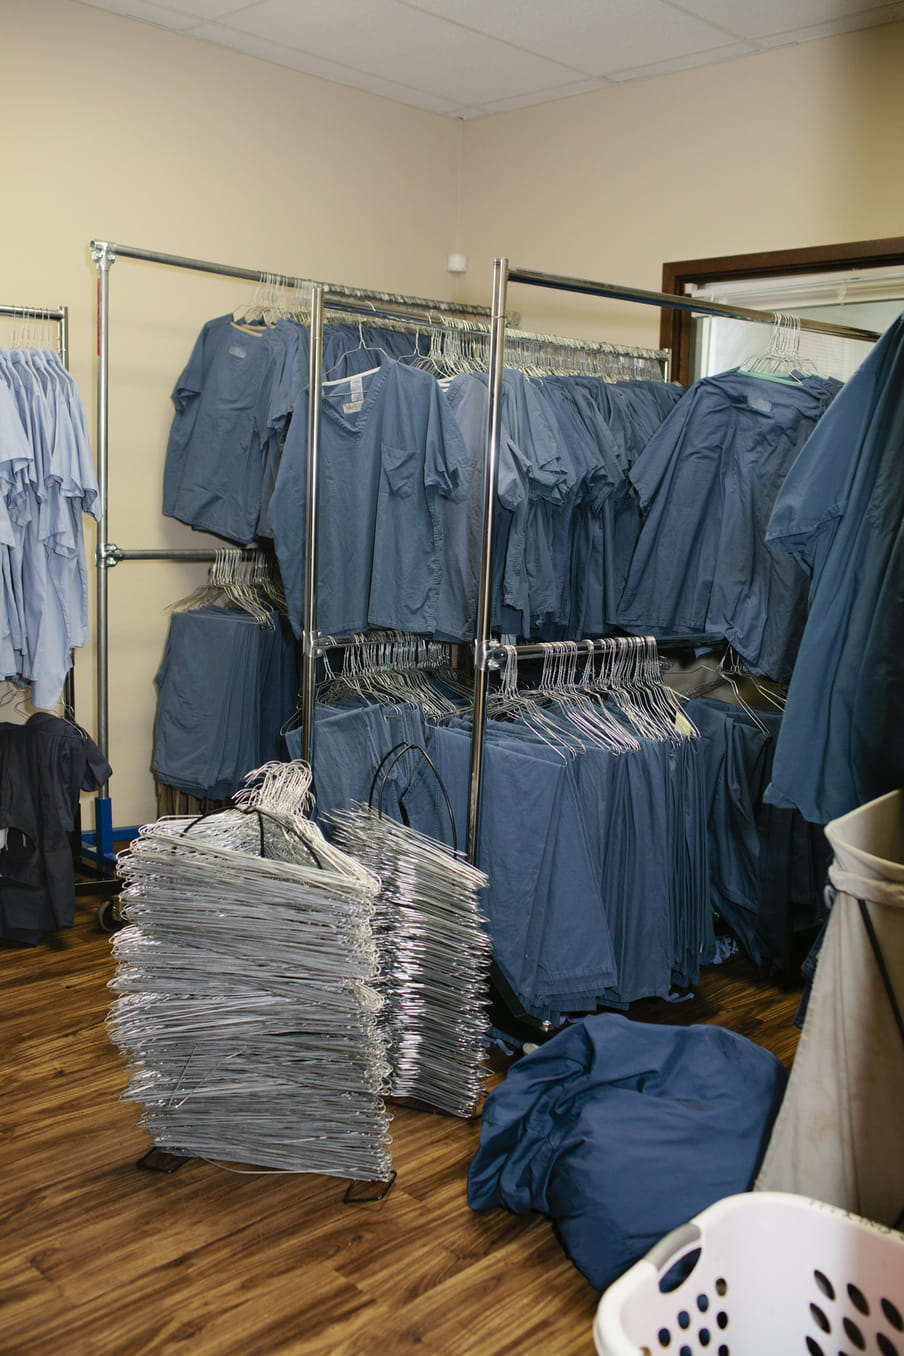 A photo taken in a room with four metal rails, filled with hanging blue smock uniforms worn by employees. At the front right, we see a white wash basket, a blue bag, and tall columns of silver metal hangers on the floor.